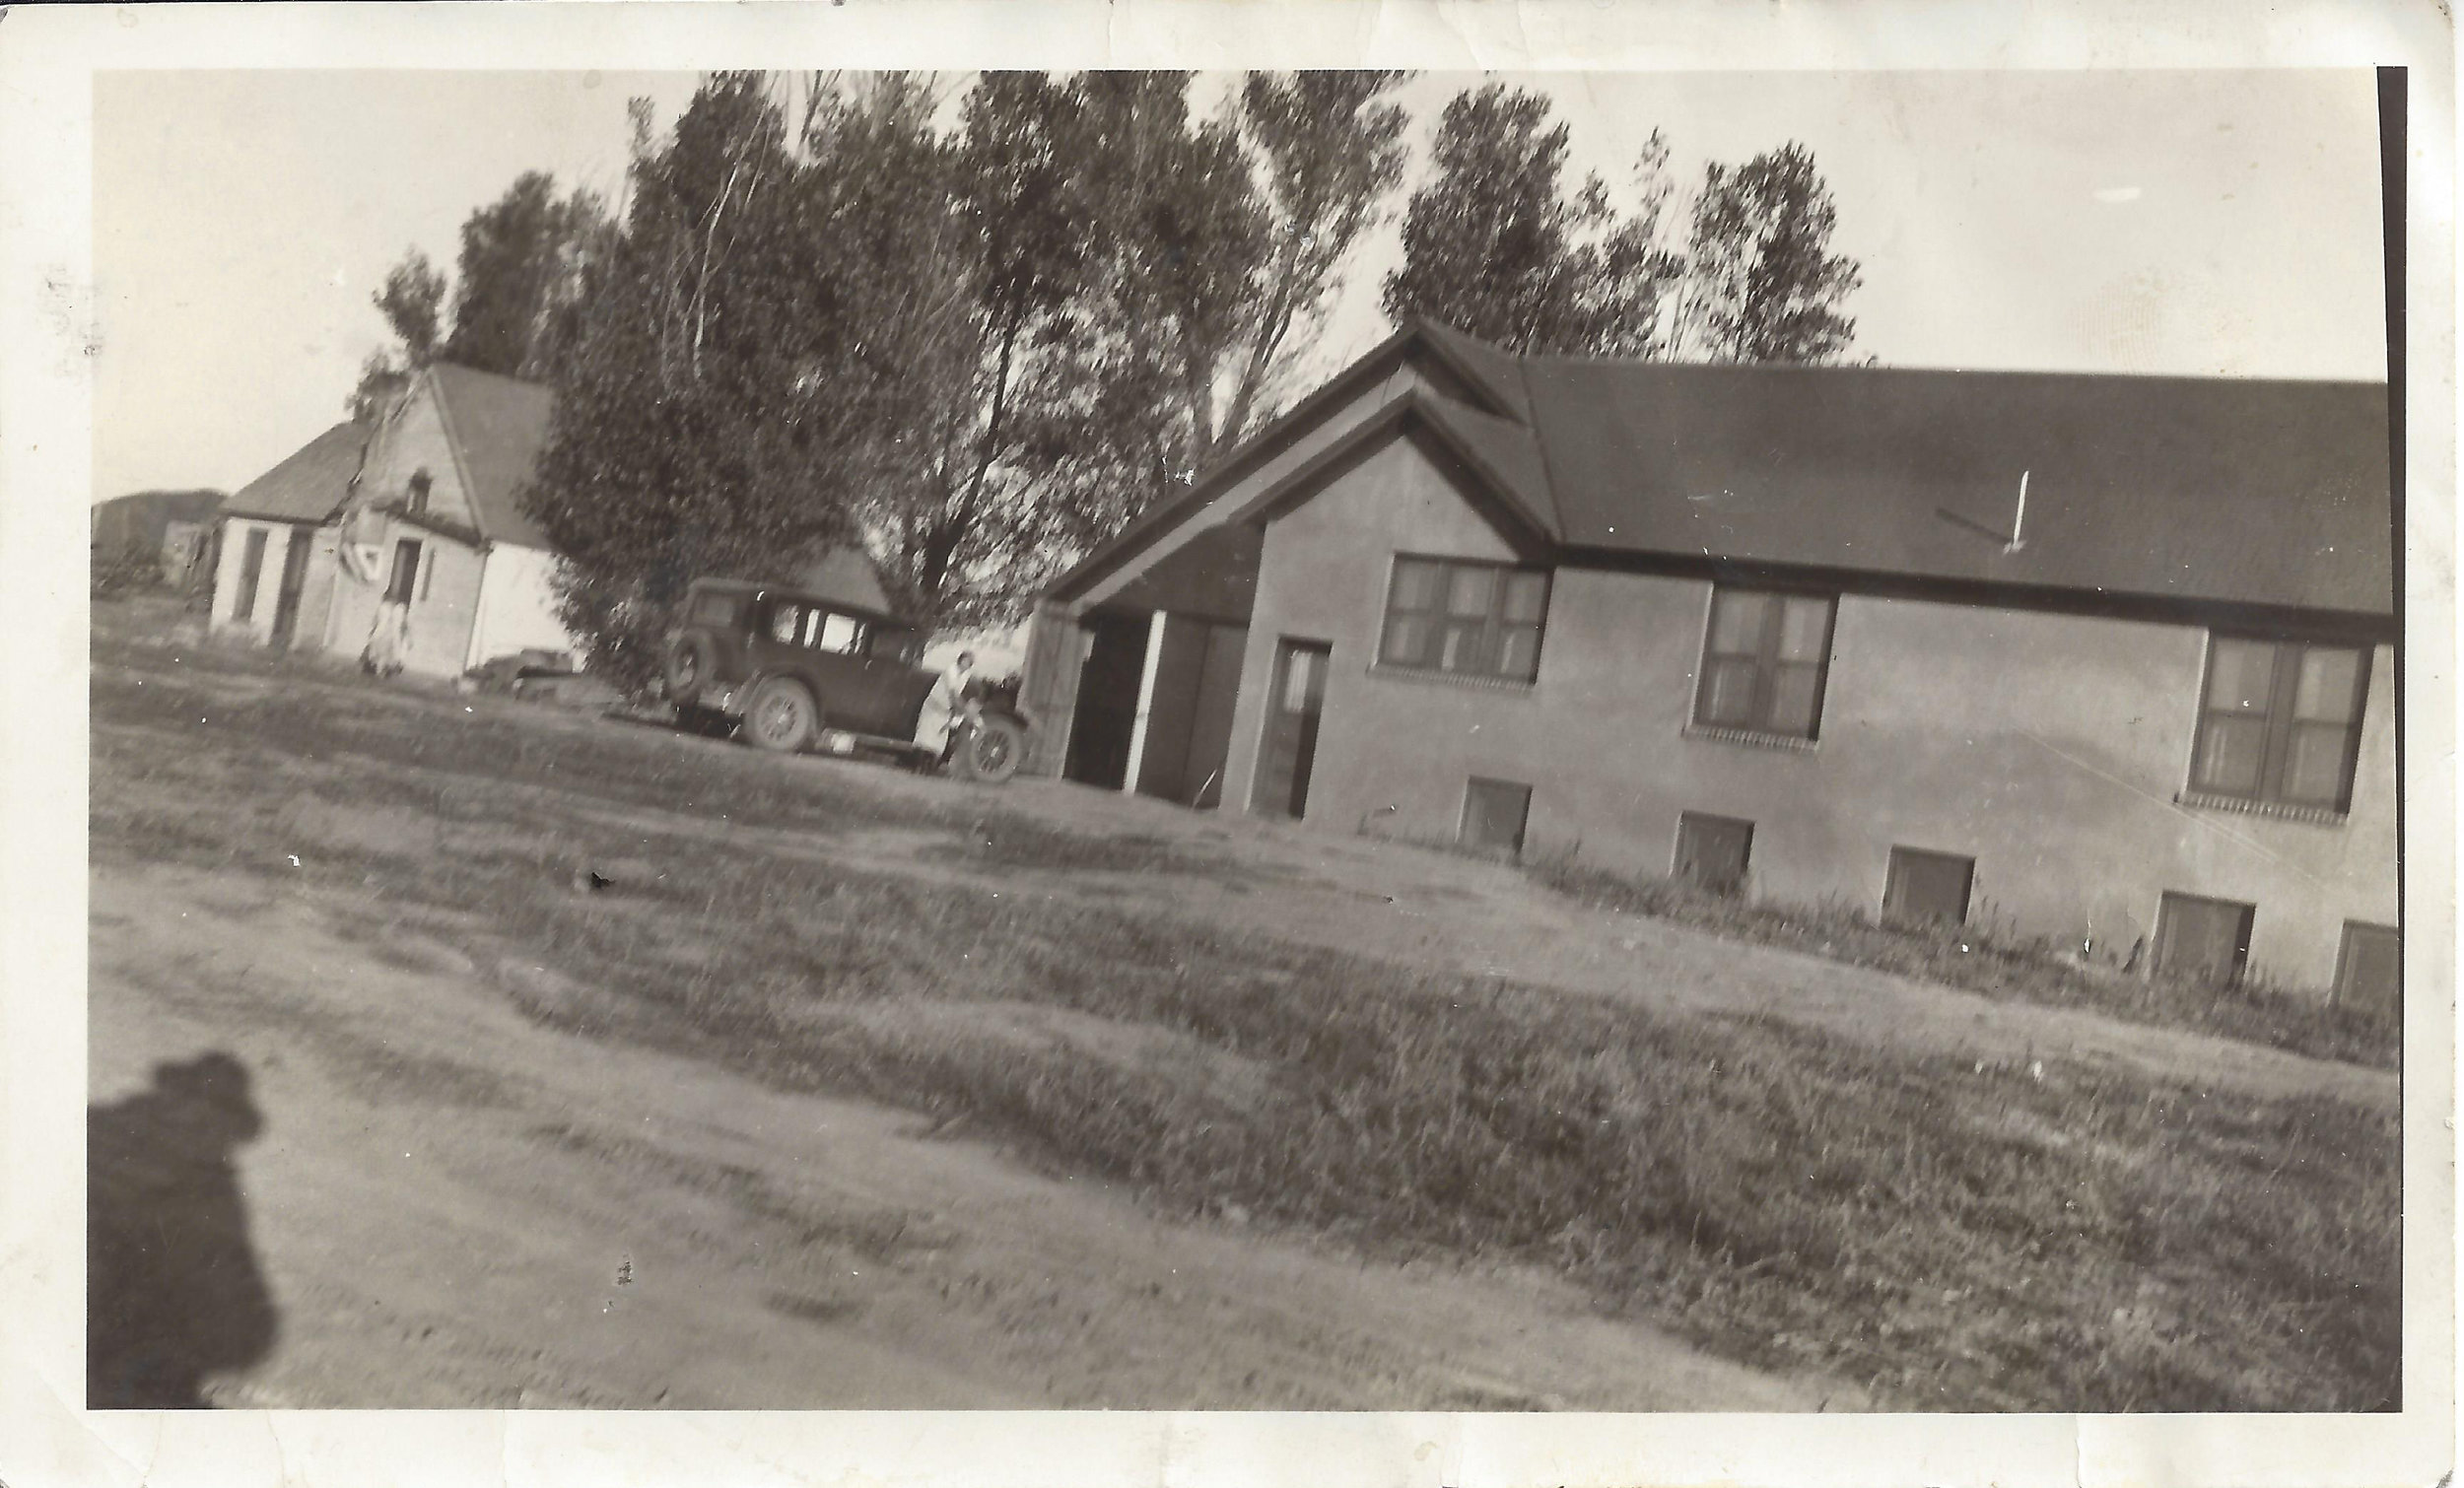 Photo of newly completed stucco house with wood frame house still standing to the west of the current farmhouse. Photo courtesy of Terry Herbst.